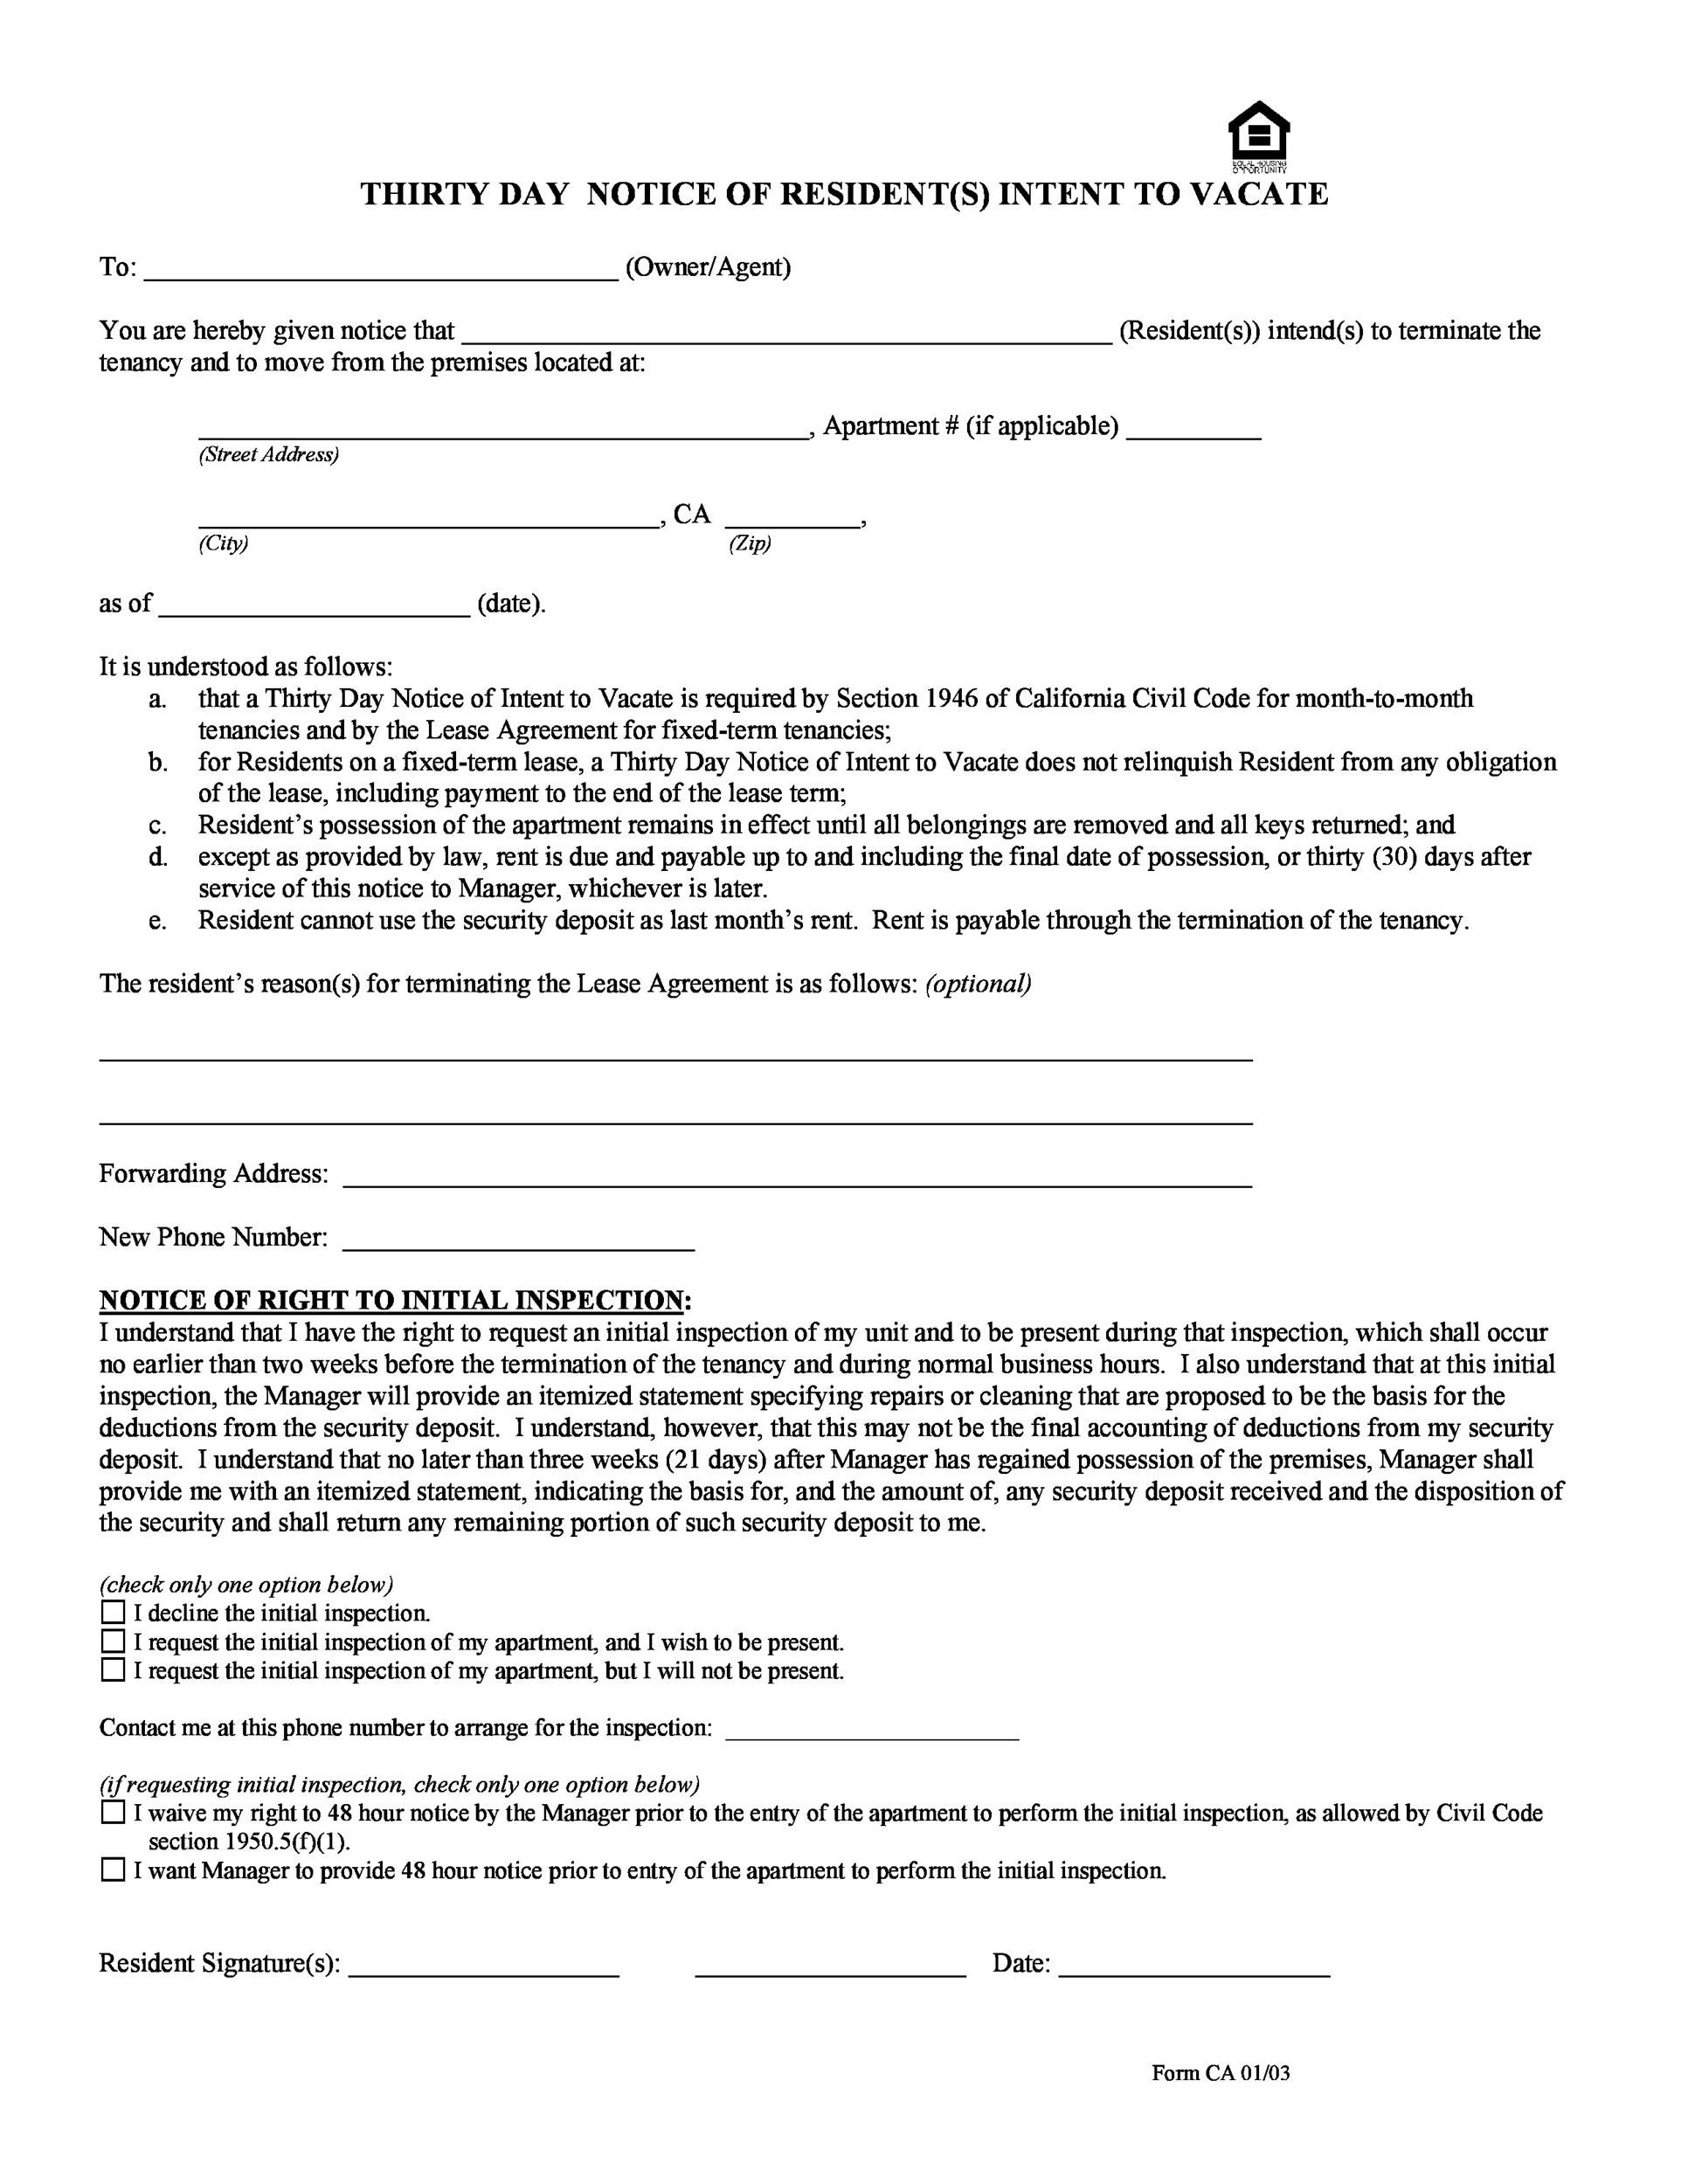 45 Eviction Notice Templates Lease Termination Letters – 30 Day Eviction Notice